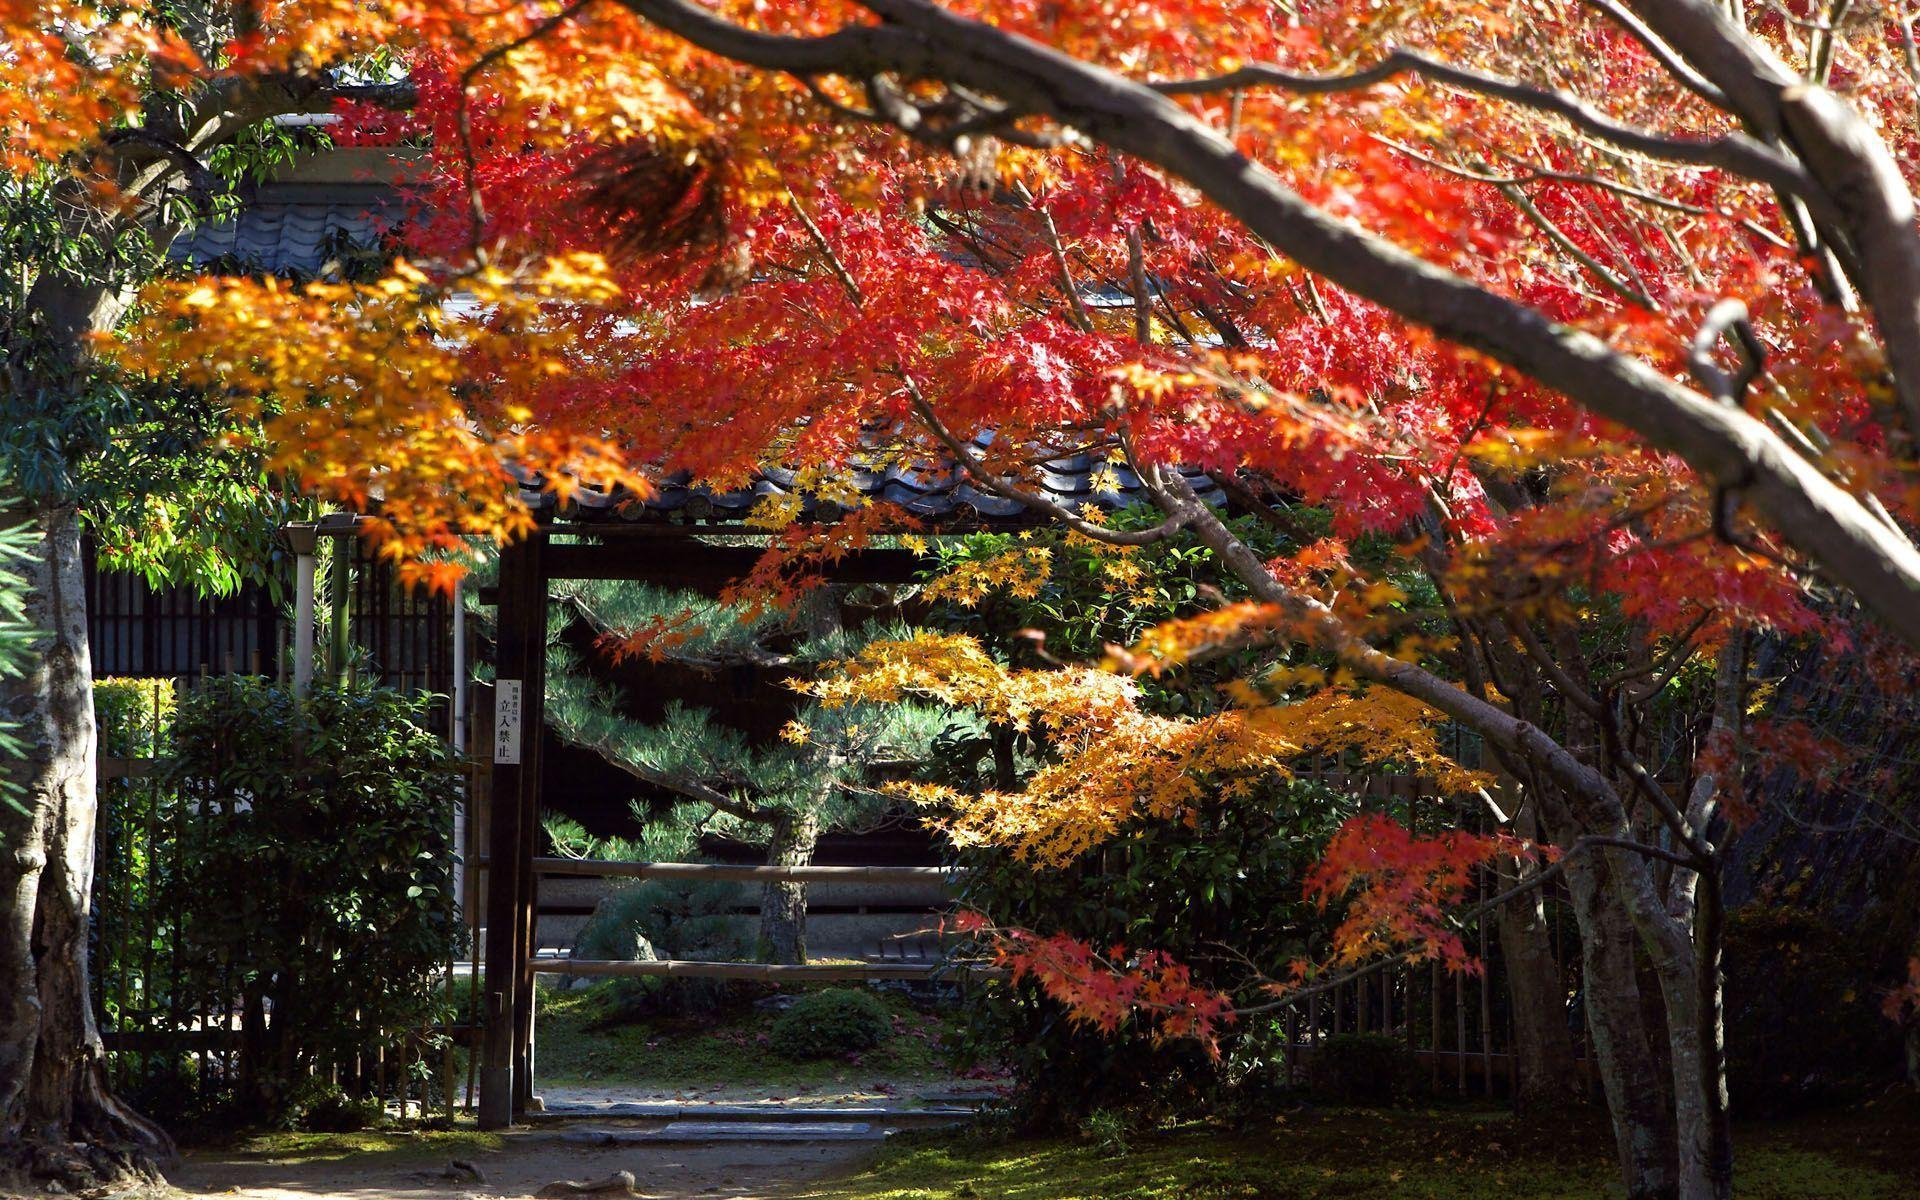 Building and City: Japan Wallpapers Widescreen, japanese garden